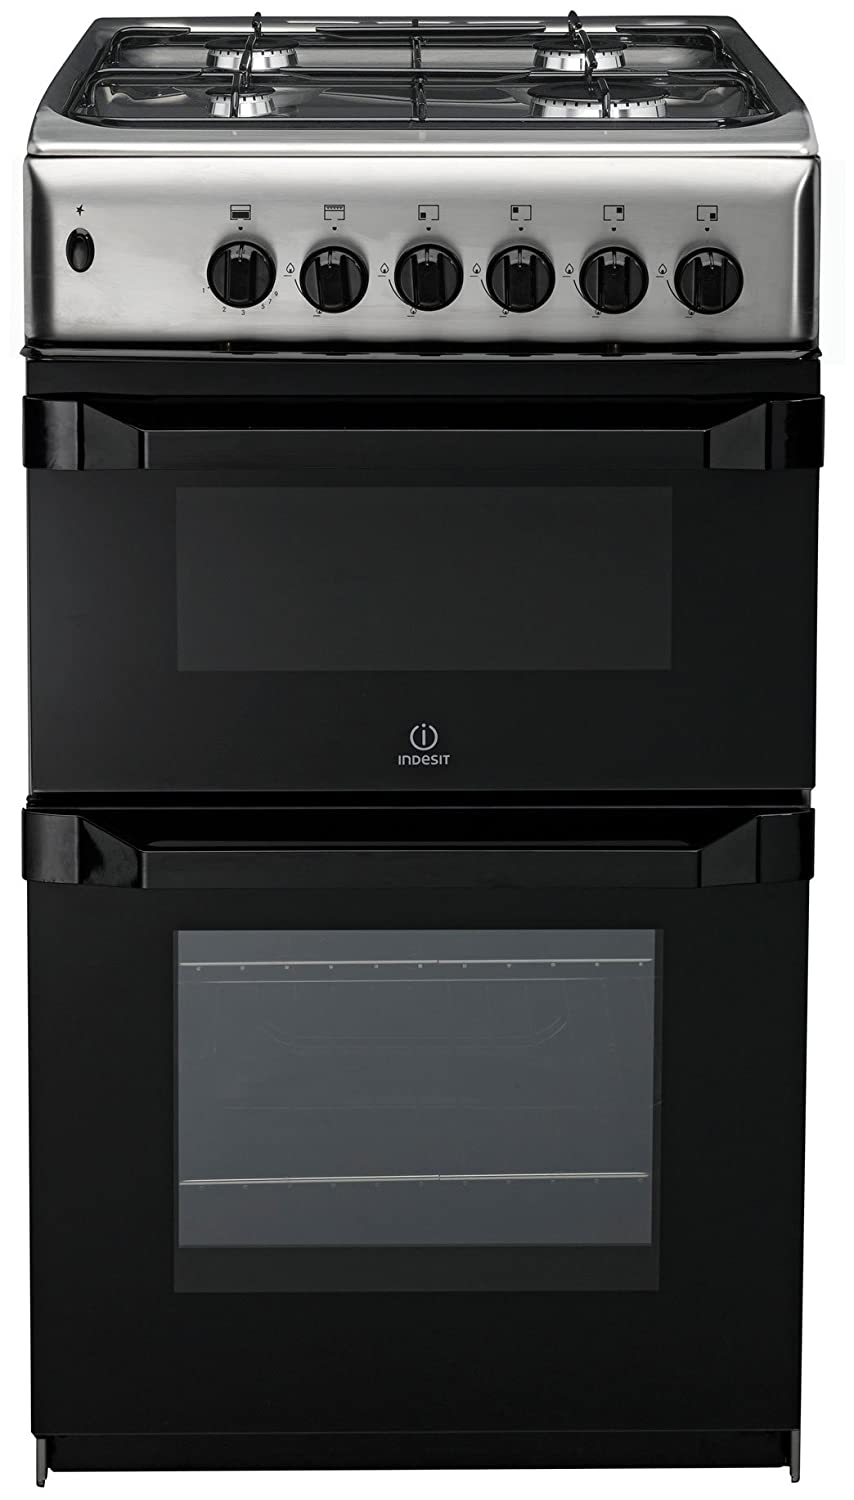 indesit it50d1xxs 50cm twin cavity dual fuel cooker stainless steel amazoncouk large appliances